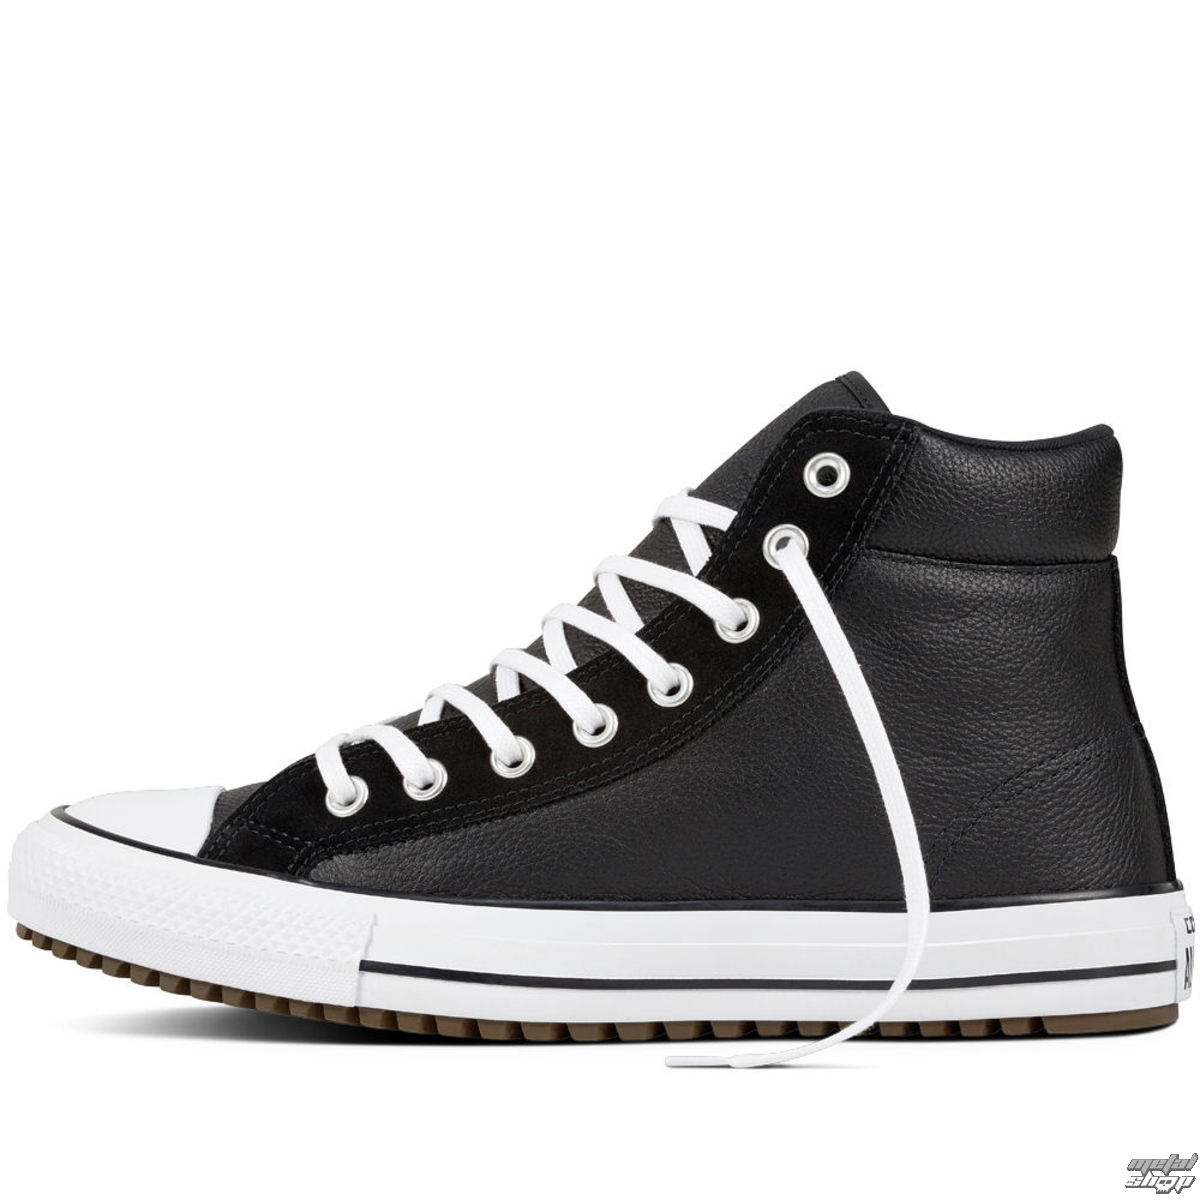 Herren Winterschuhe Chuck Taylor All Star PC CONVERSE